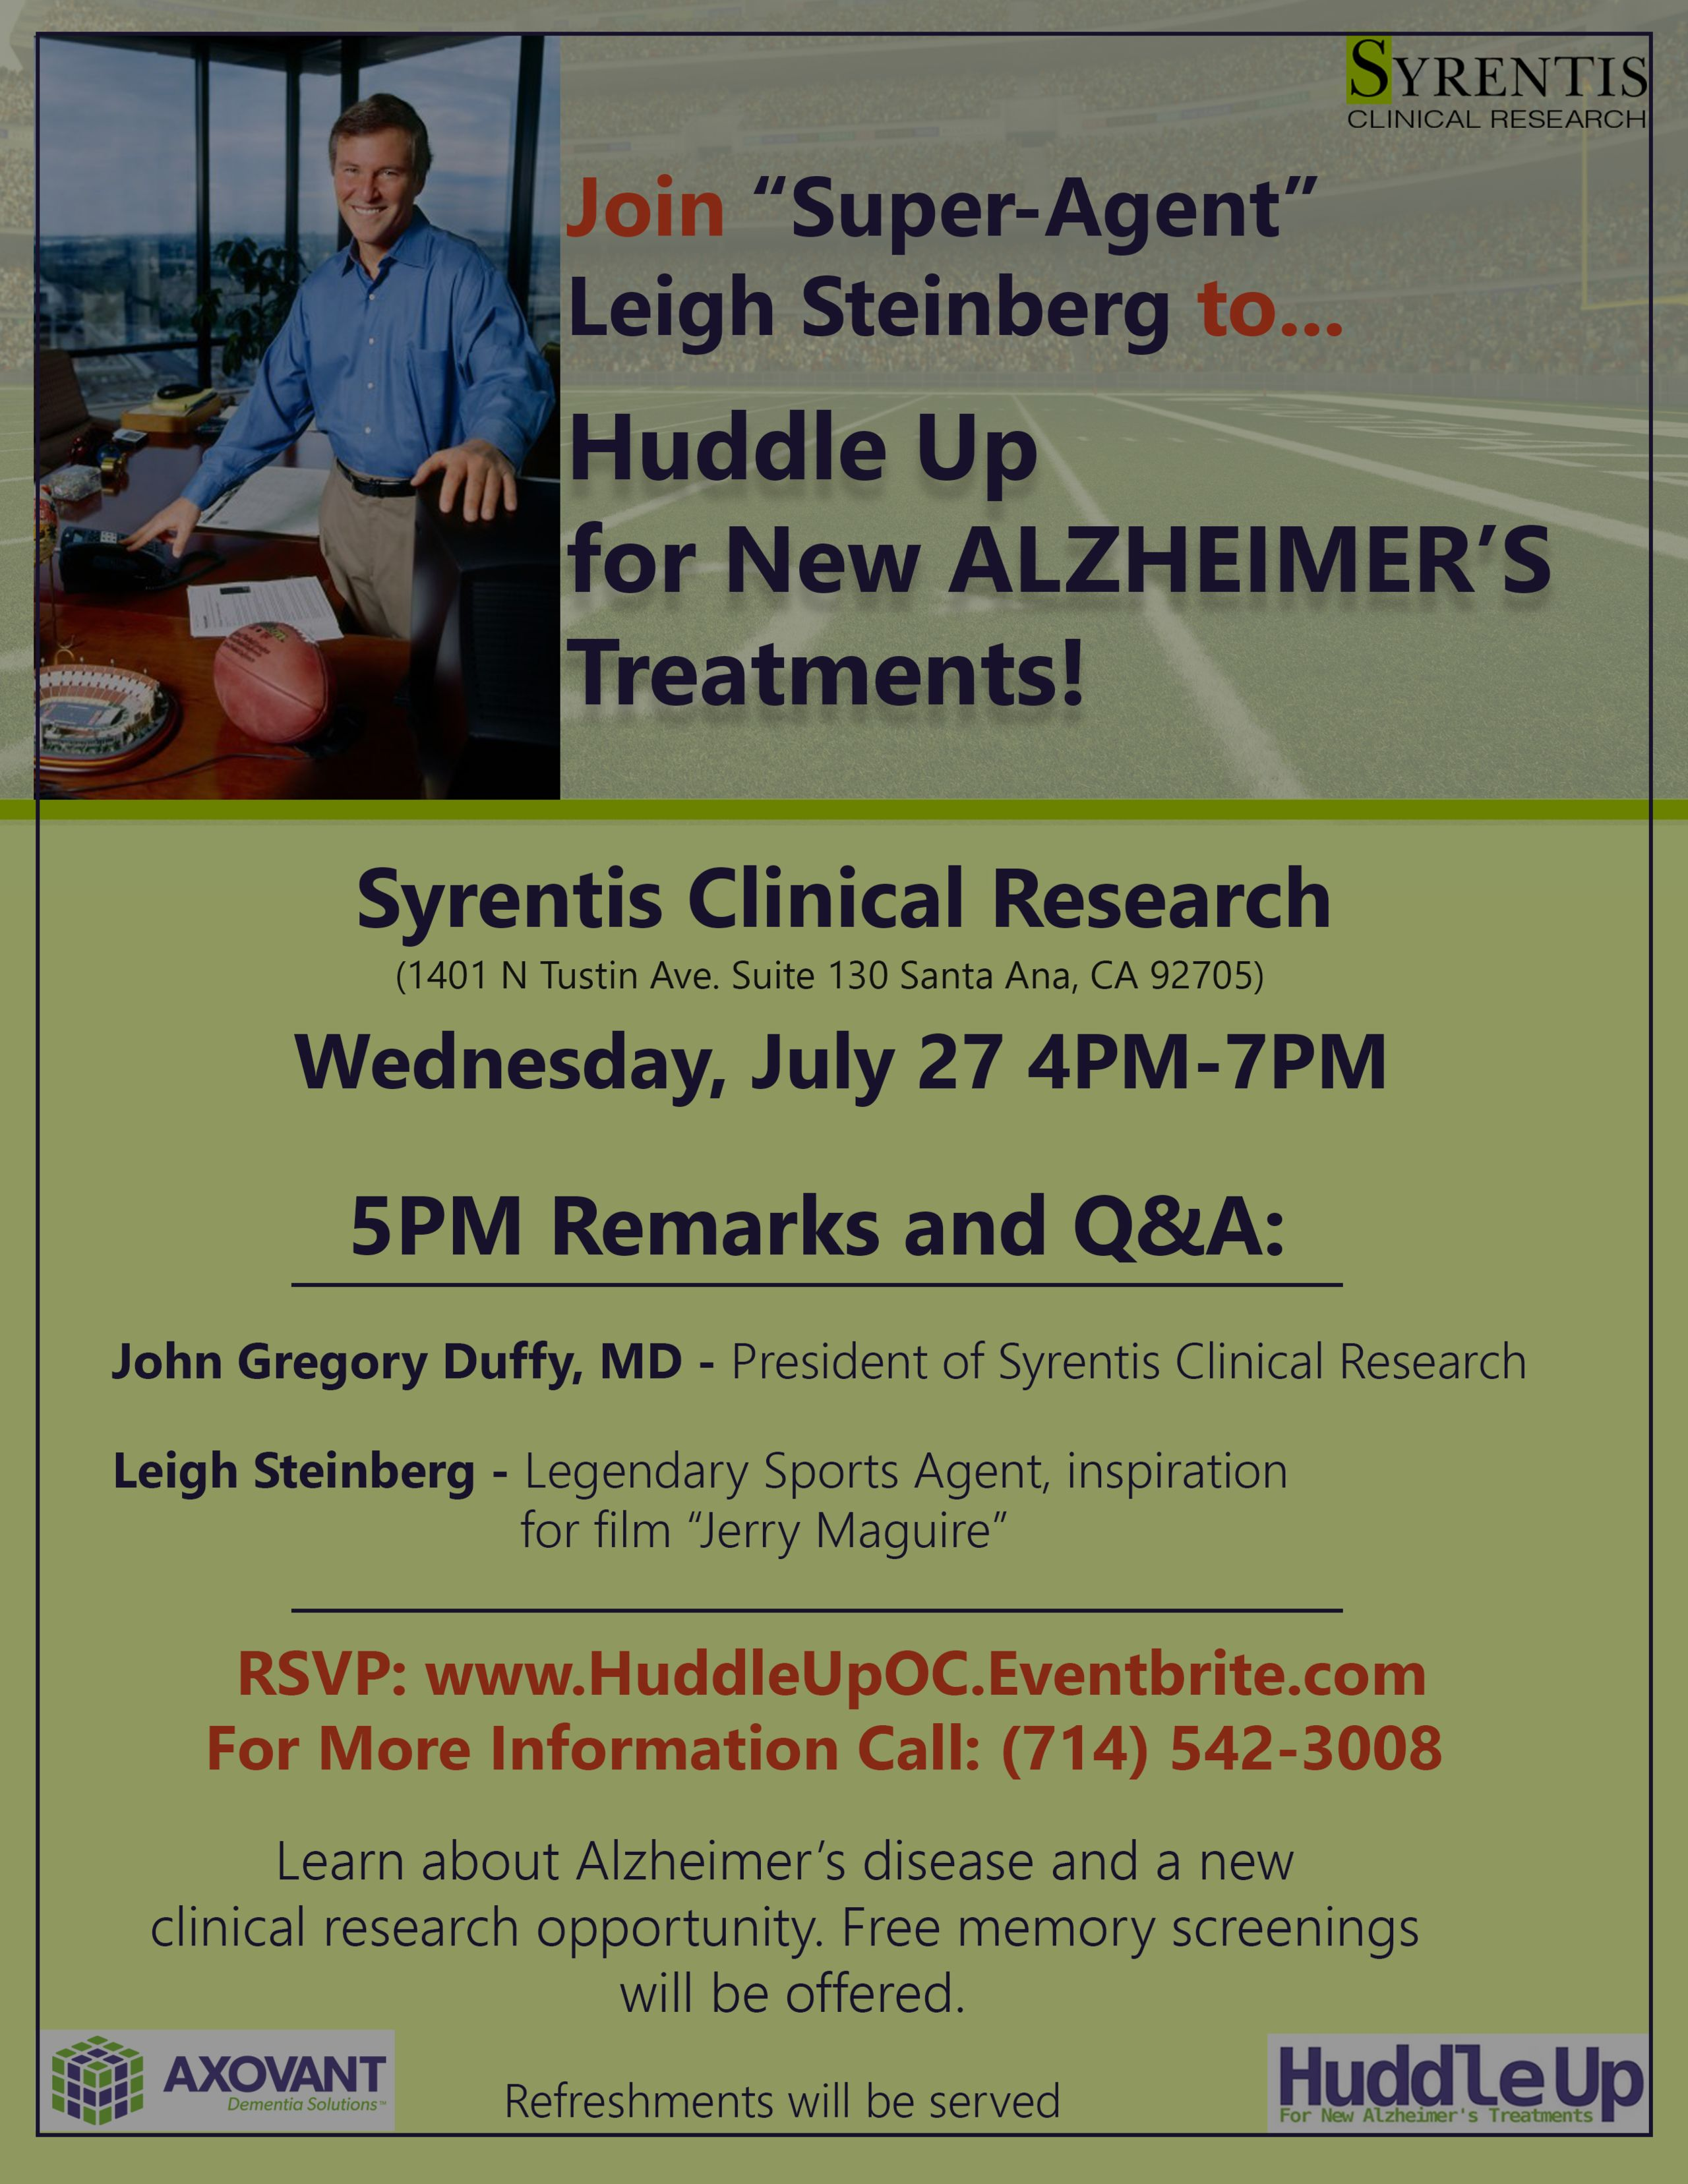 Huddle Up For New Alzheimer's Treatments with Leigh Steinberg Syrentis Research Axovant Sciences